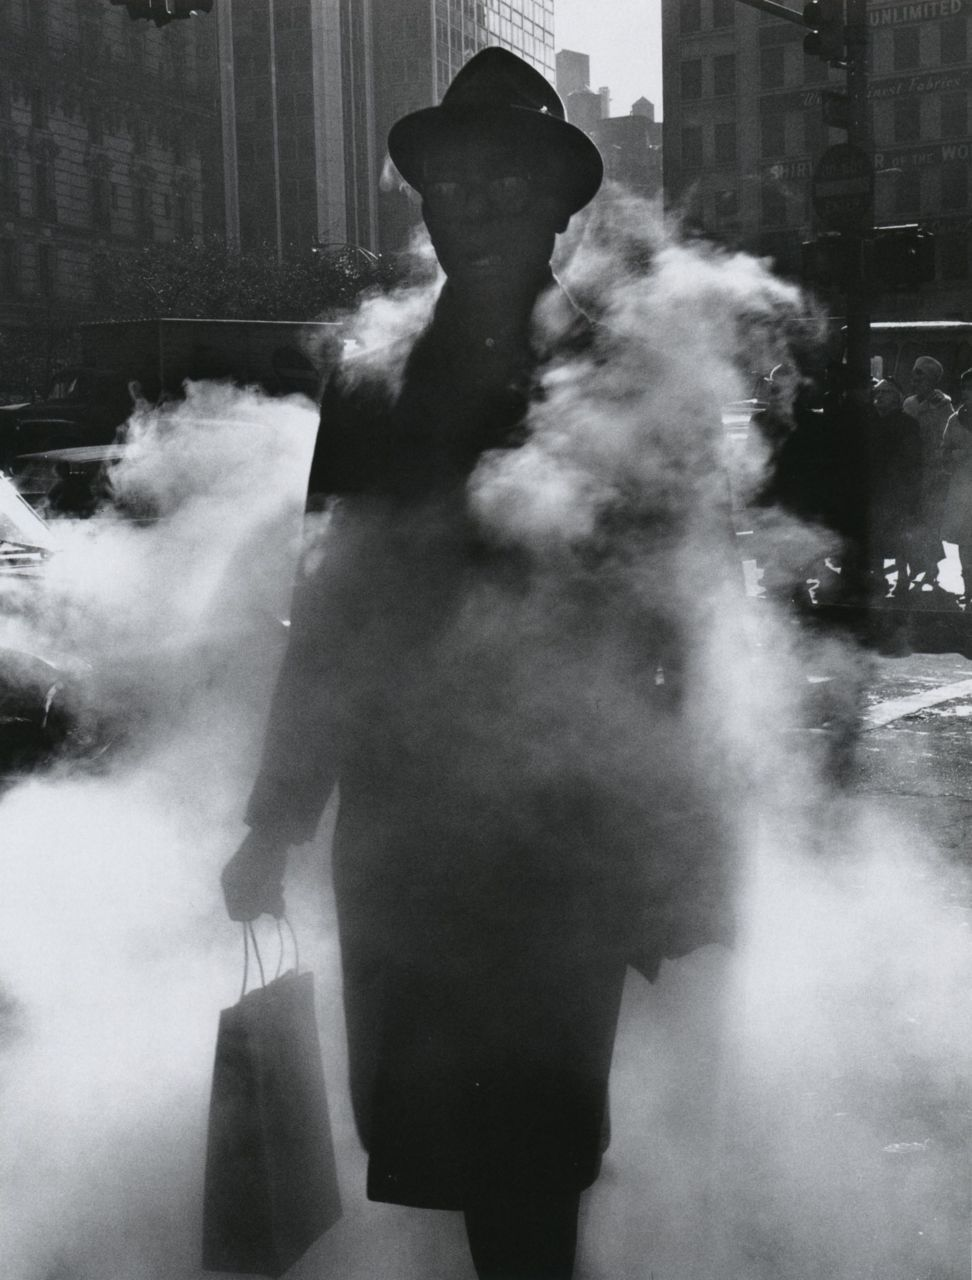 Arthur Tress Man in Steam New York, 1968 From Arthur Tress: Fantastic Voyage, Photographs 1956-2000